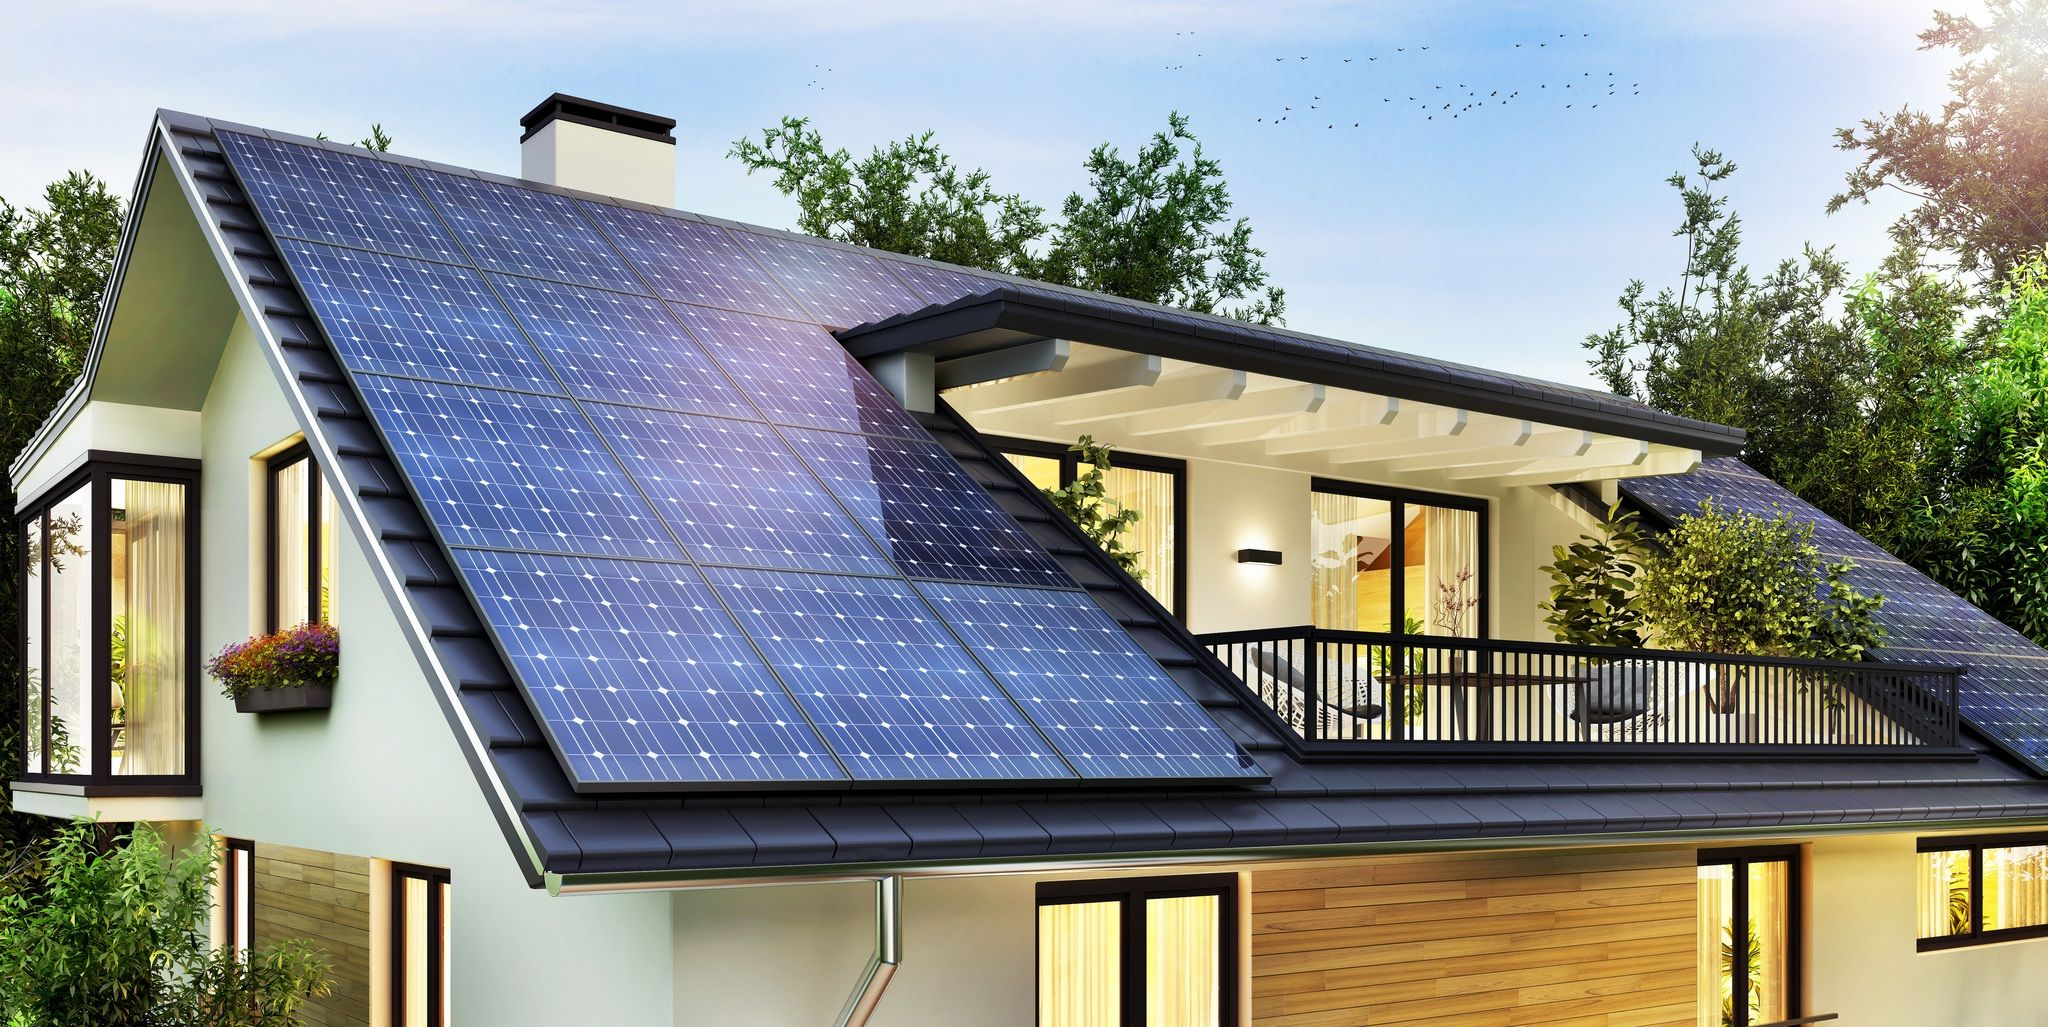 Simple Steps To Create A Zero Carbon Home Https Www Moneypit Com Simple Steps To Create A In 2020 Solar Panels Architecture Beautiful Modern Homes Solar Panels Roof